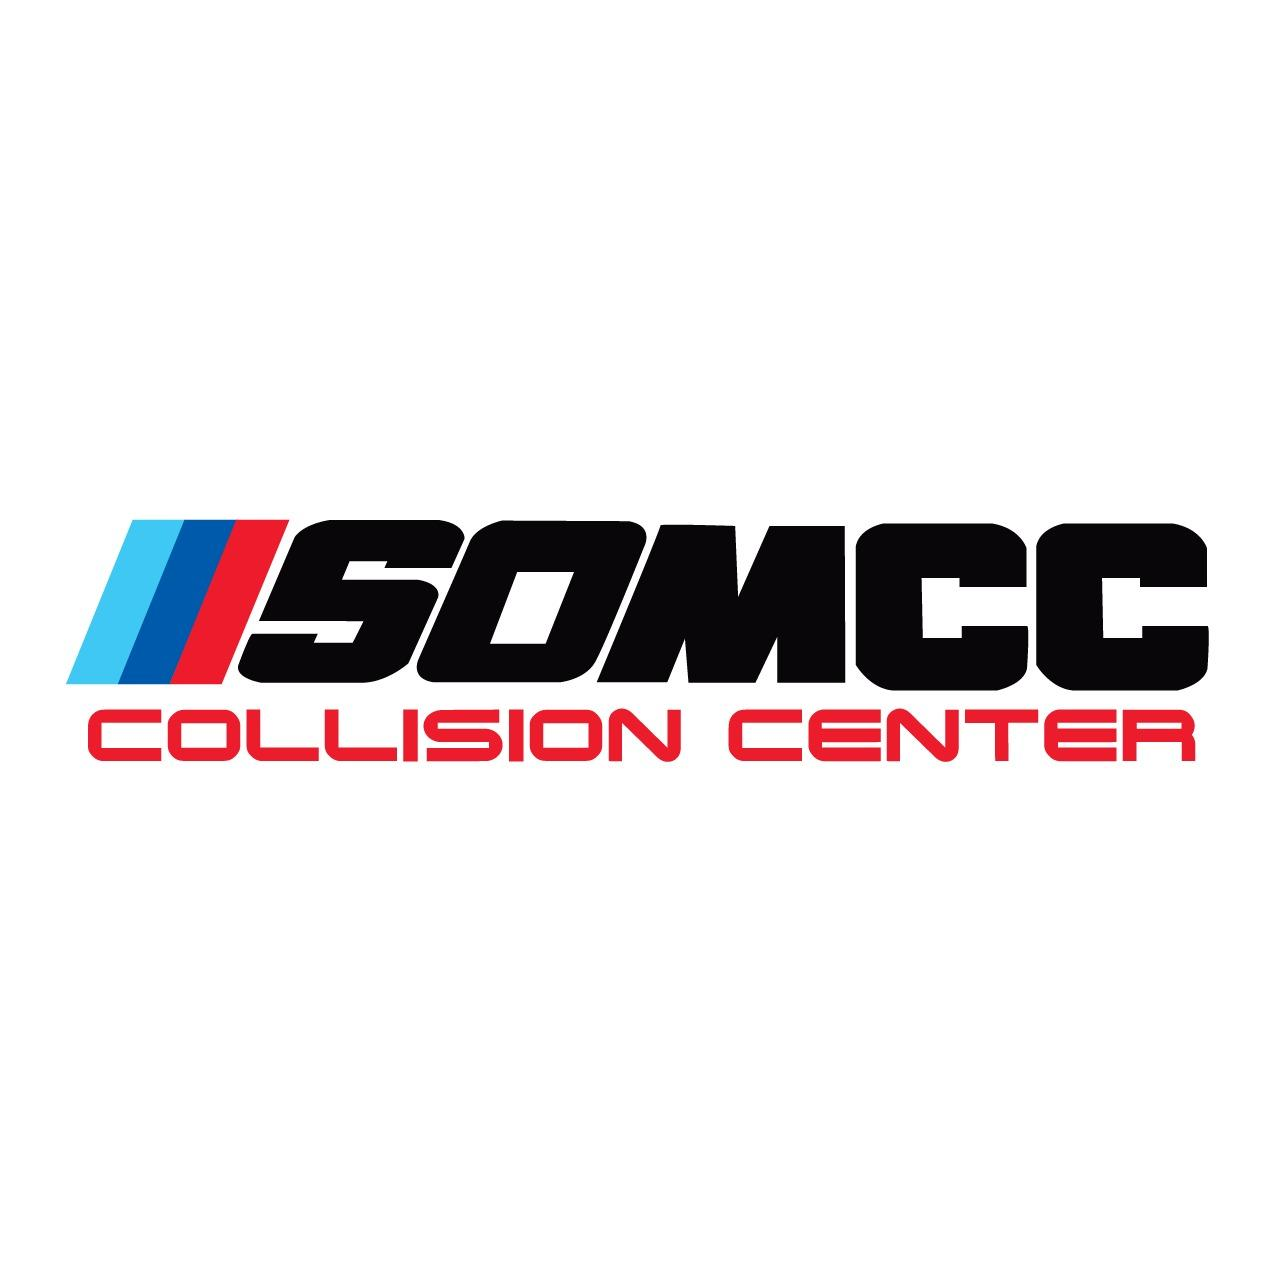 Safford Owings Mills Collision Center